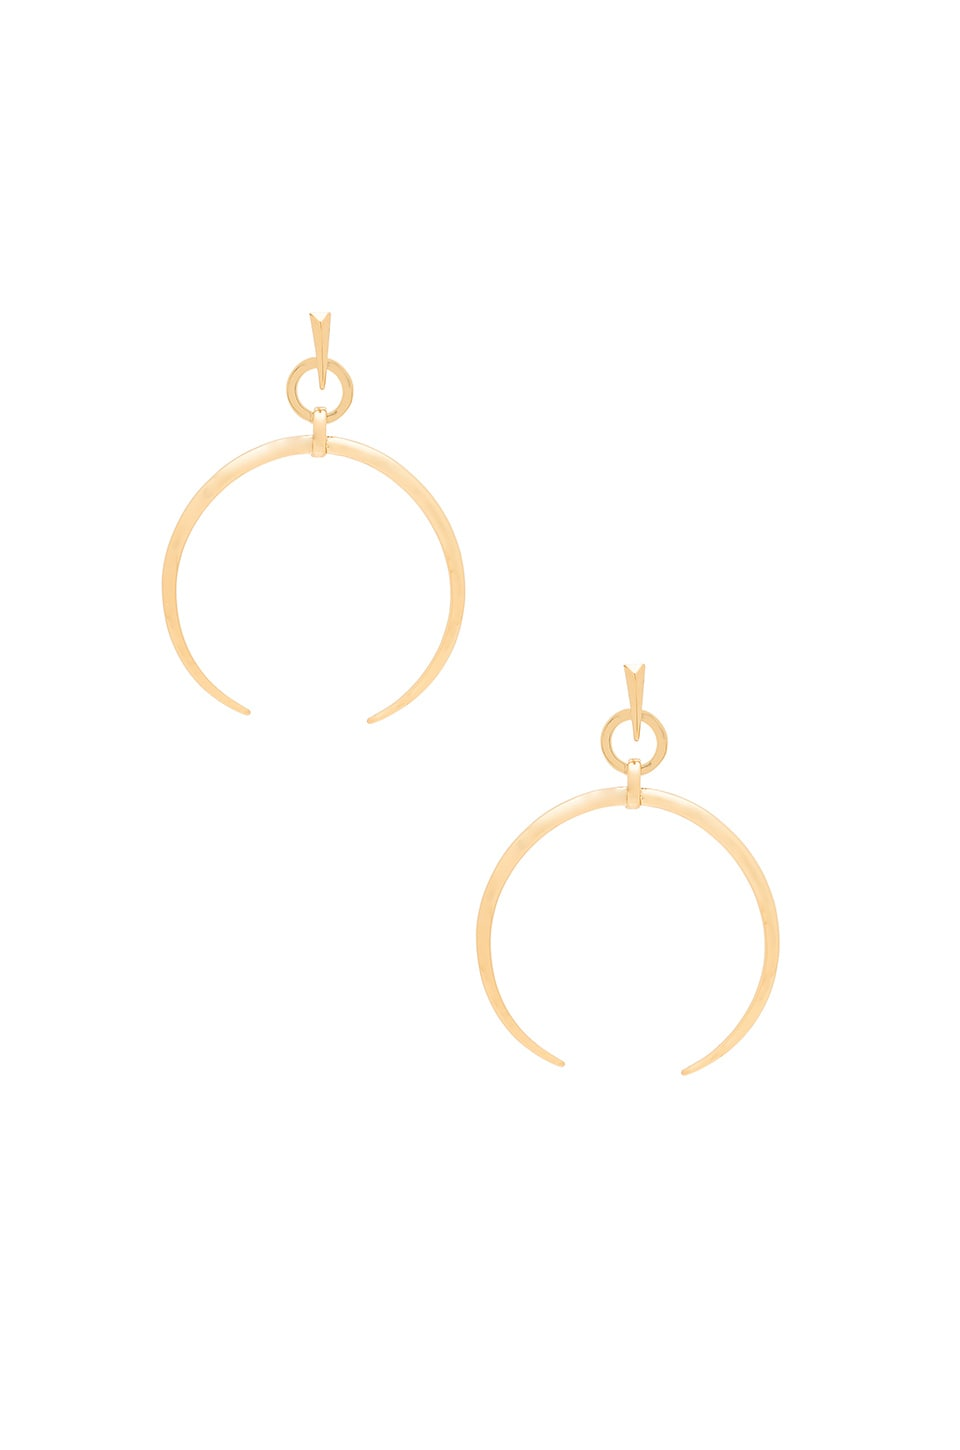 Luv AJ Oversized Crescent Hoop Earrings in Antique Gold